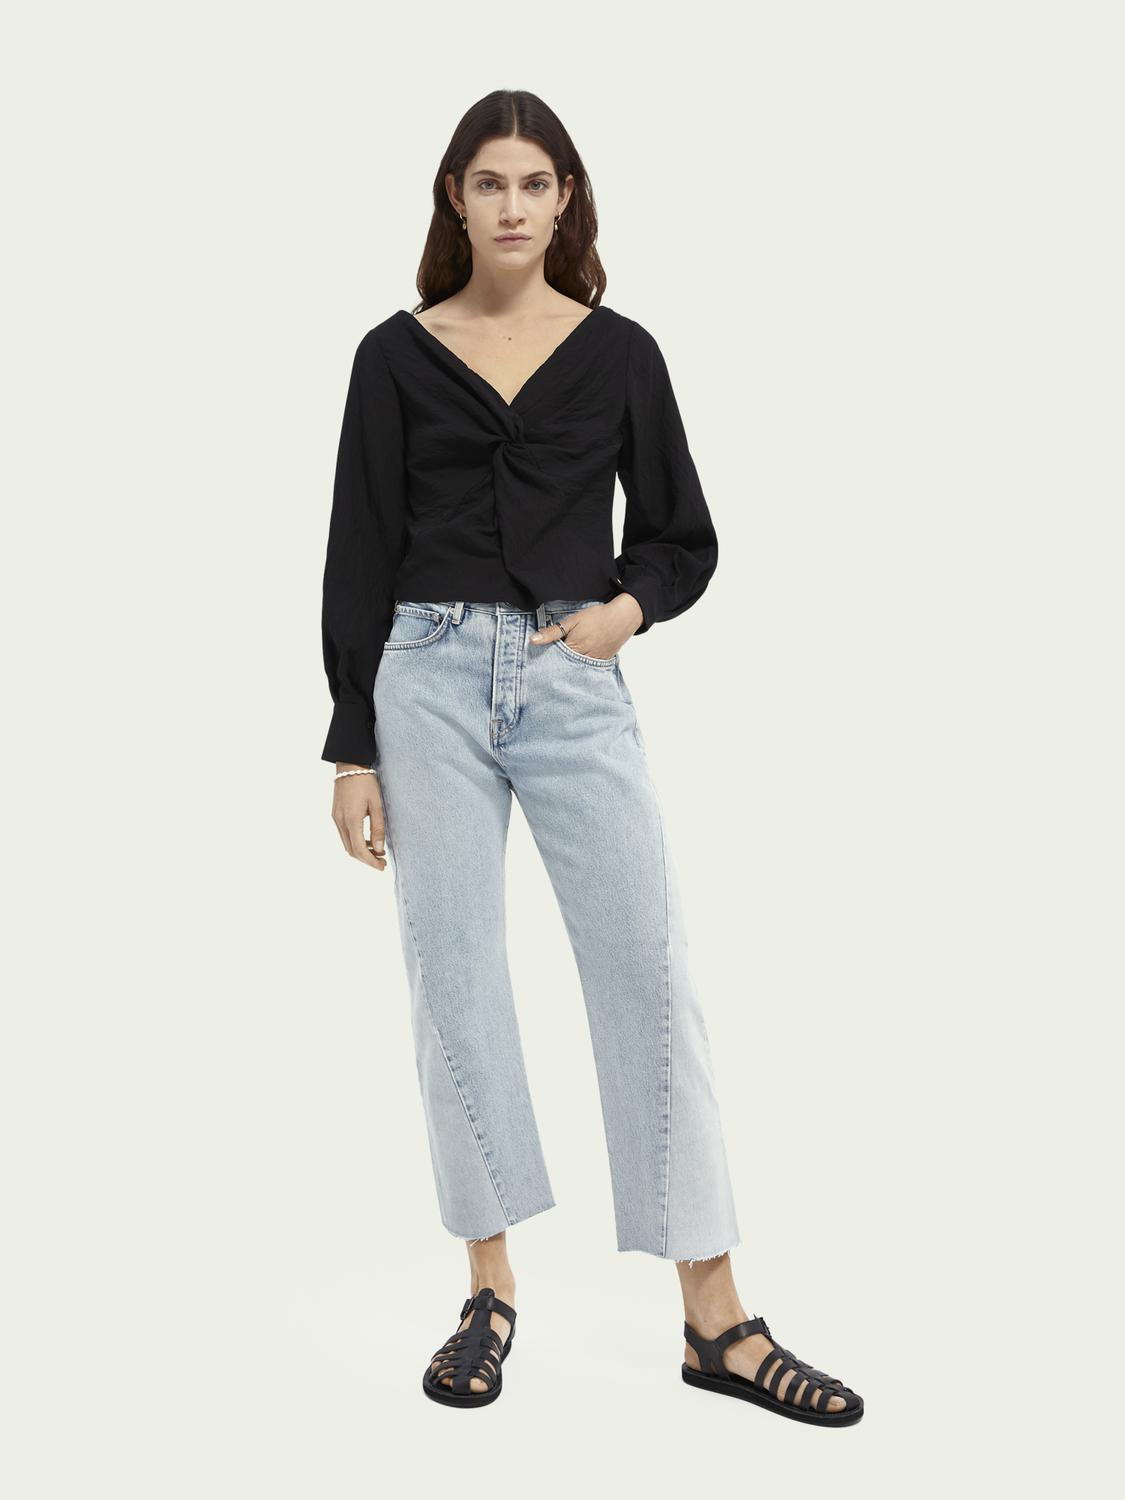 V-neck knotted top 1